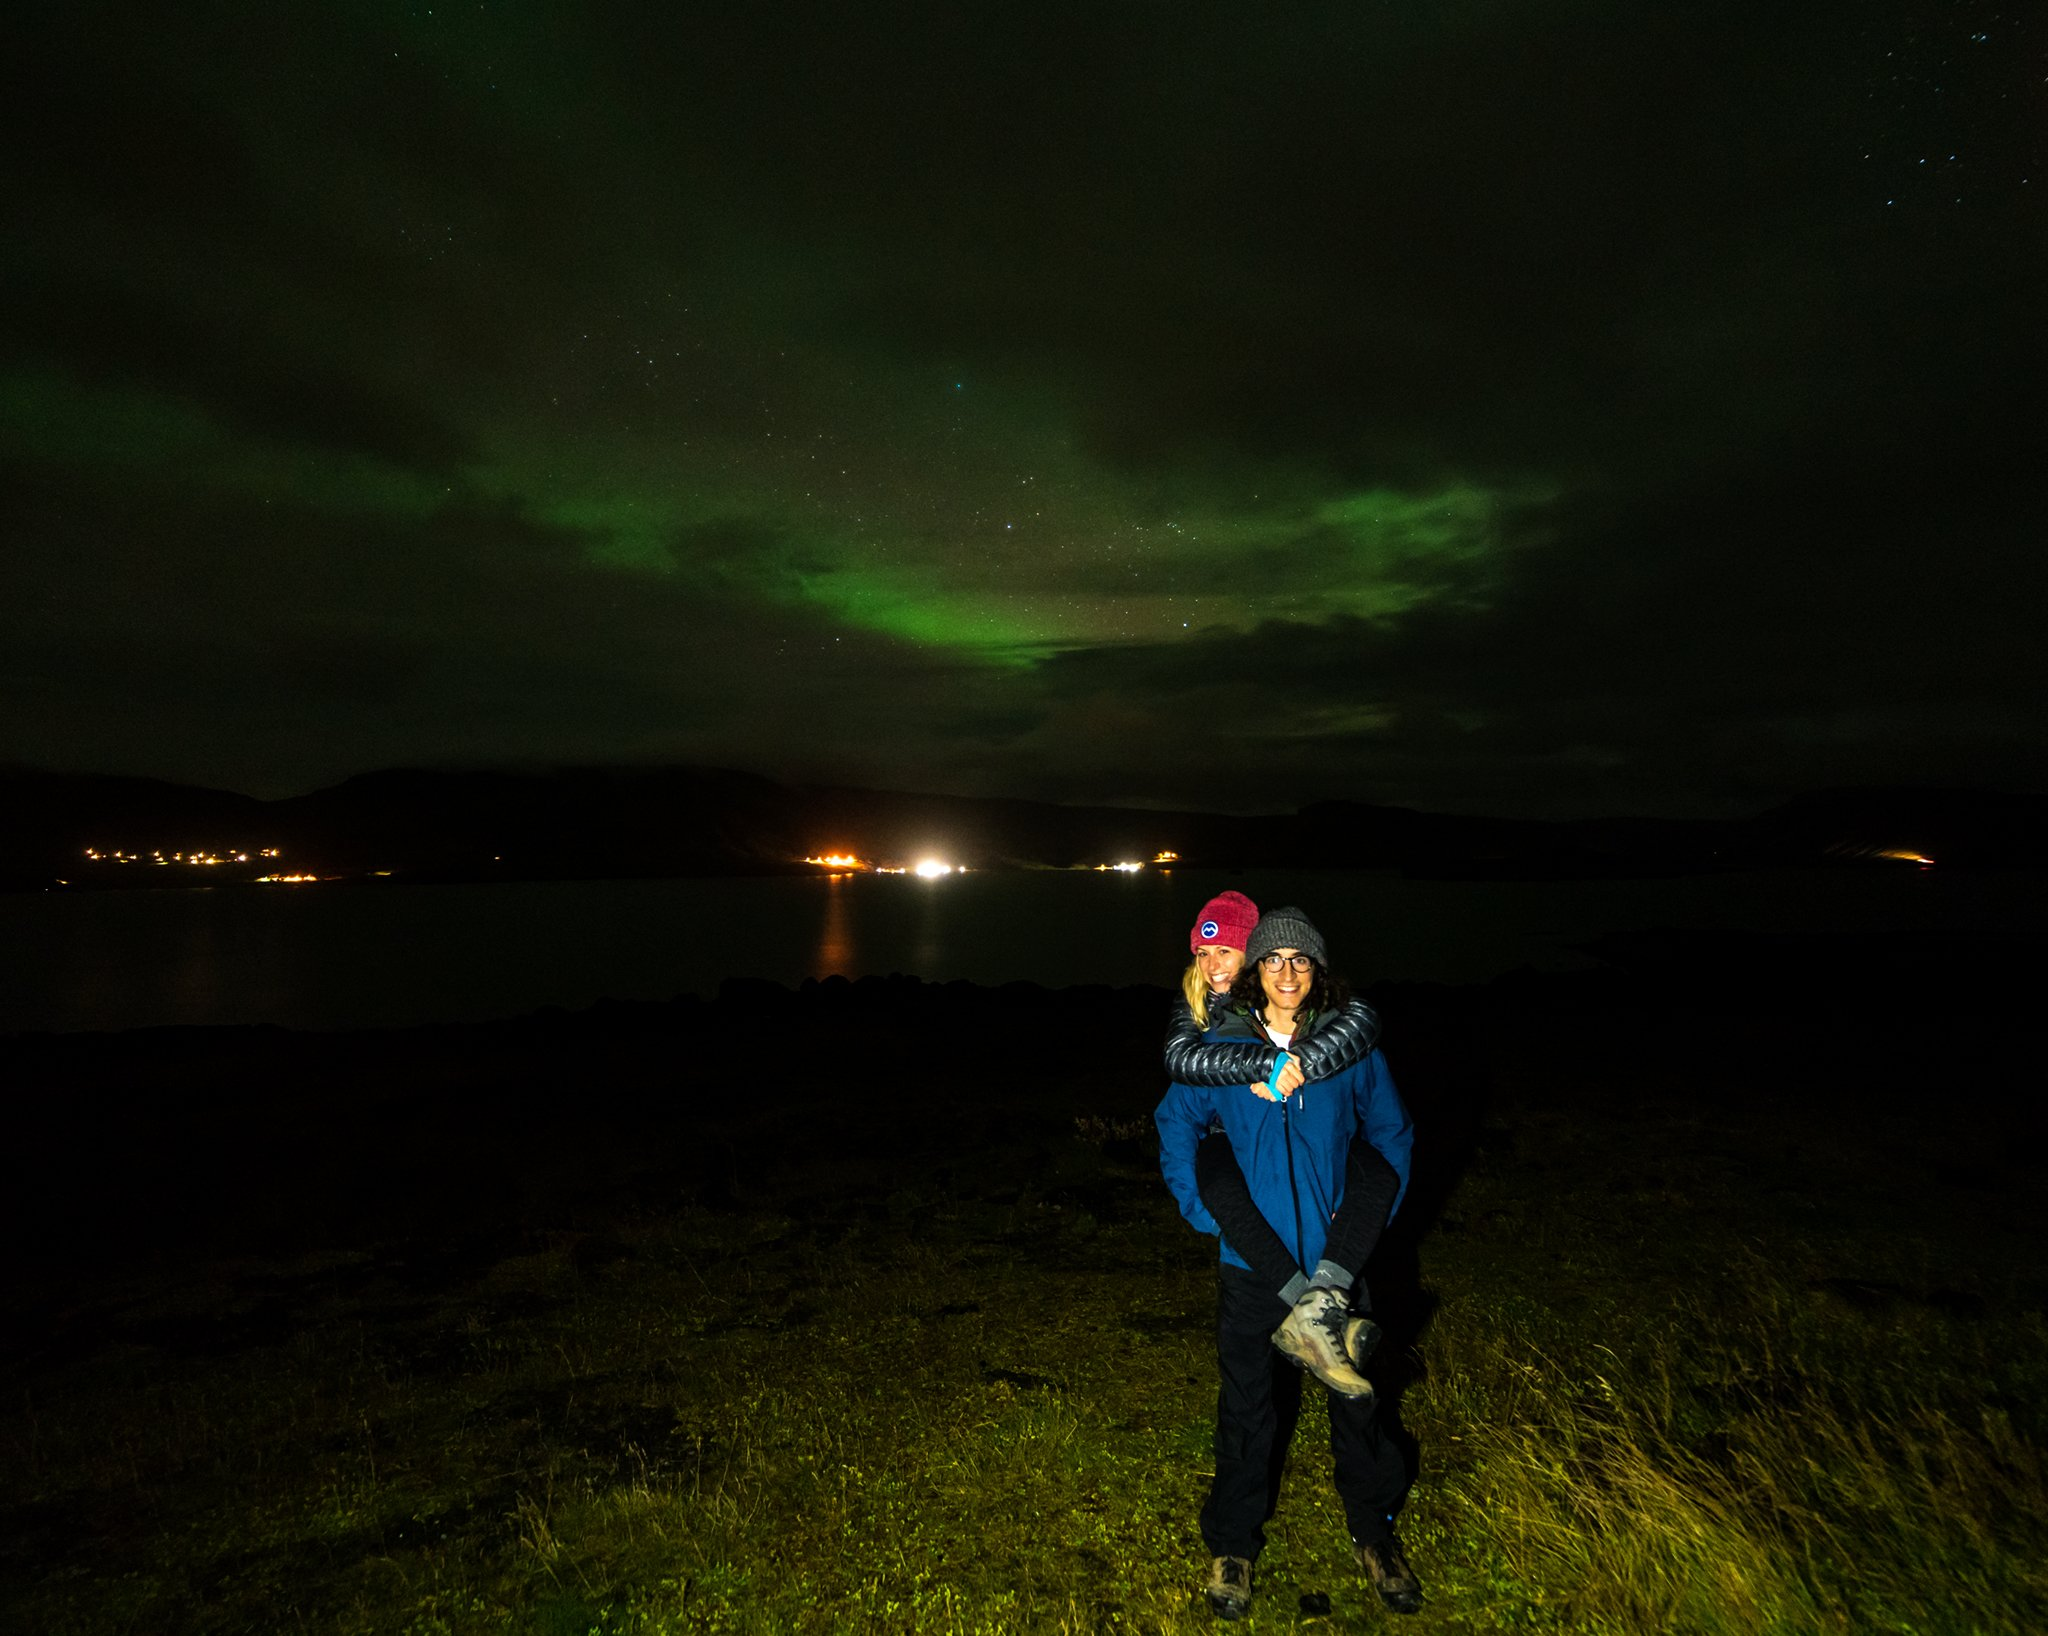 The Northern Lights -- if you want to see one of nature's great spectacles, and capture its beauty on camera, be sure to go on a photo tour in Iceland! Read more at www.thefivefoottraveler.com